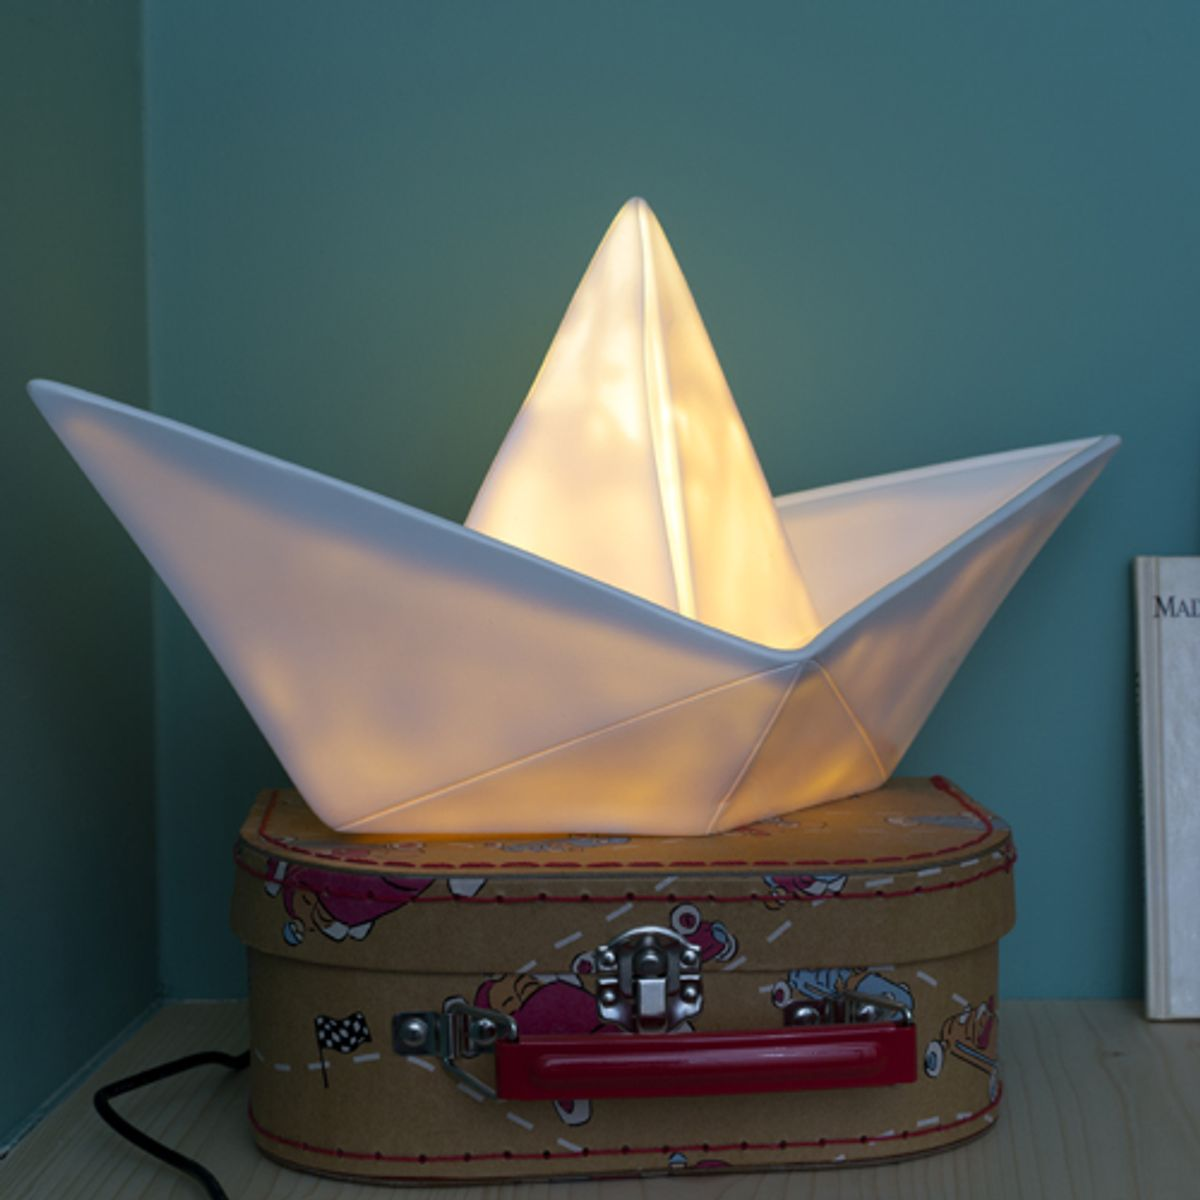 Lampe / veilleuse Bâteau en vinyle Goodnight Light - Blanc